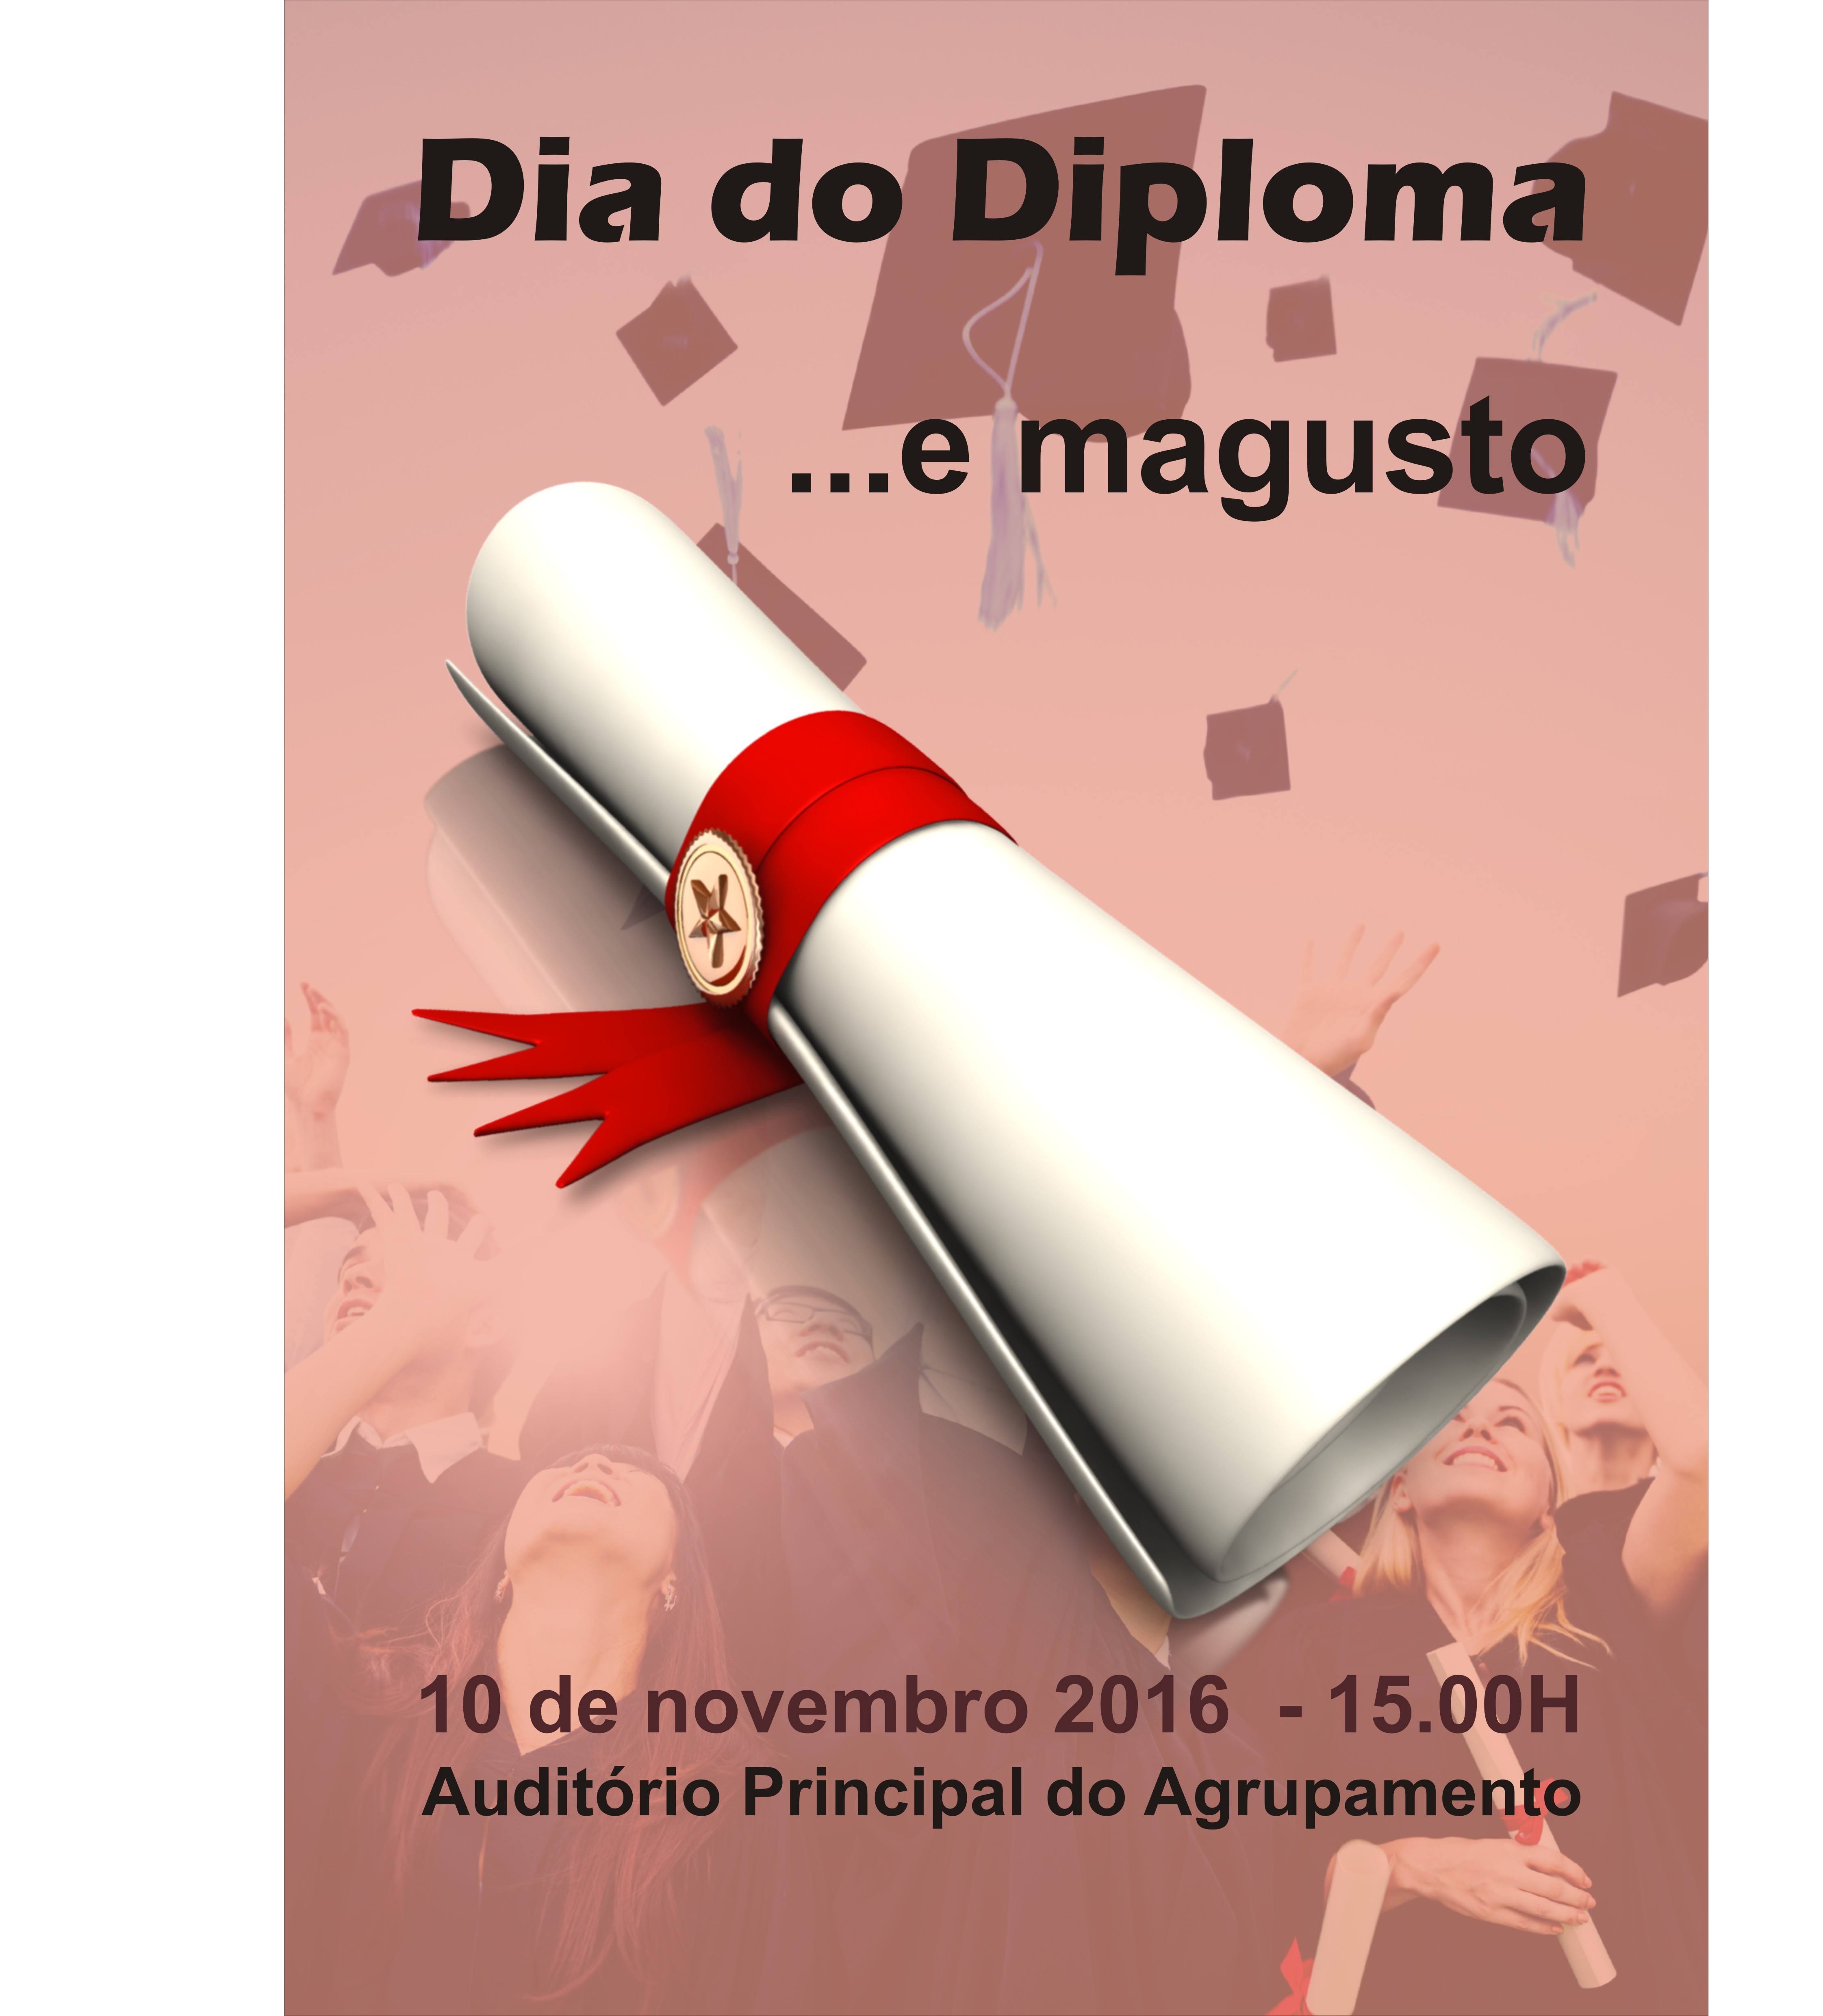 cartaz dia do diploma 2016 1